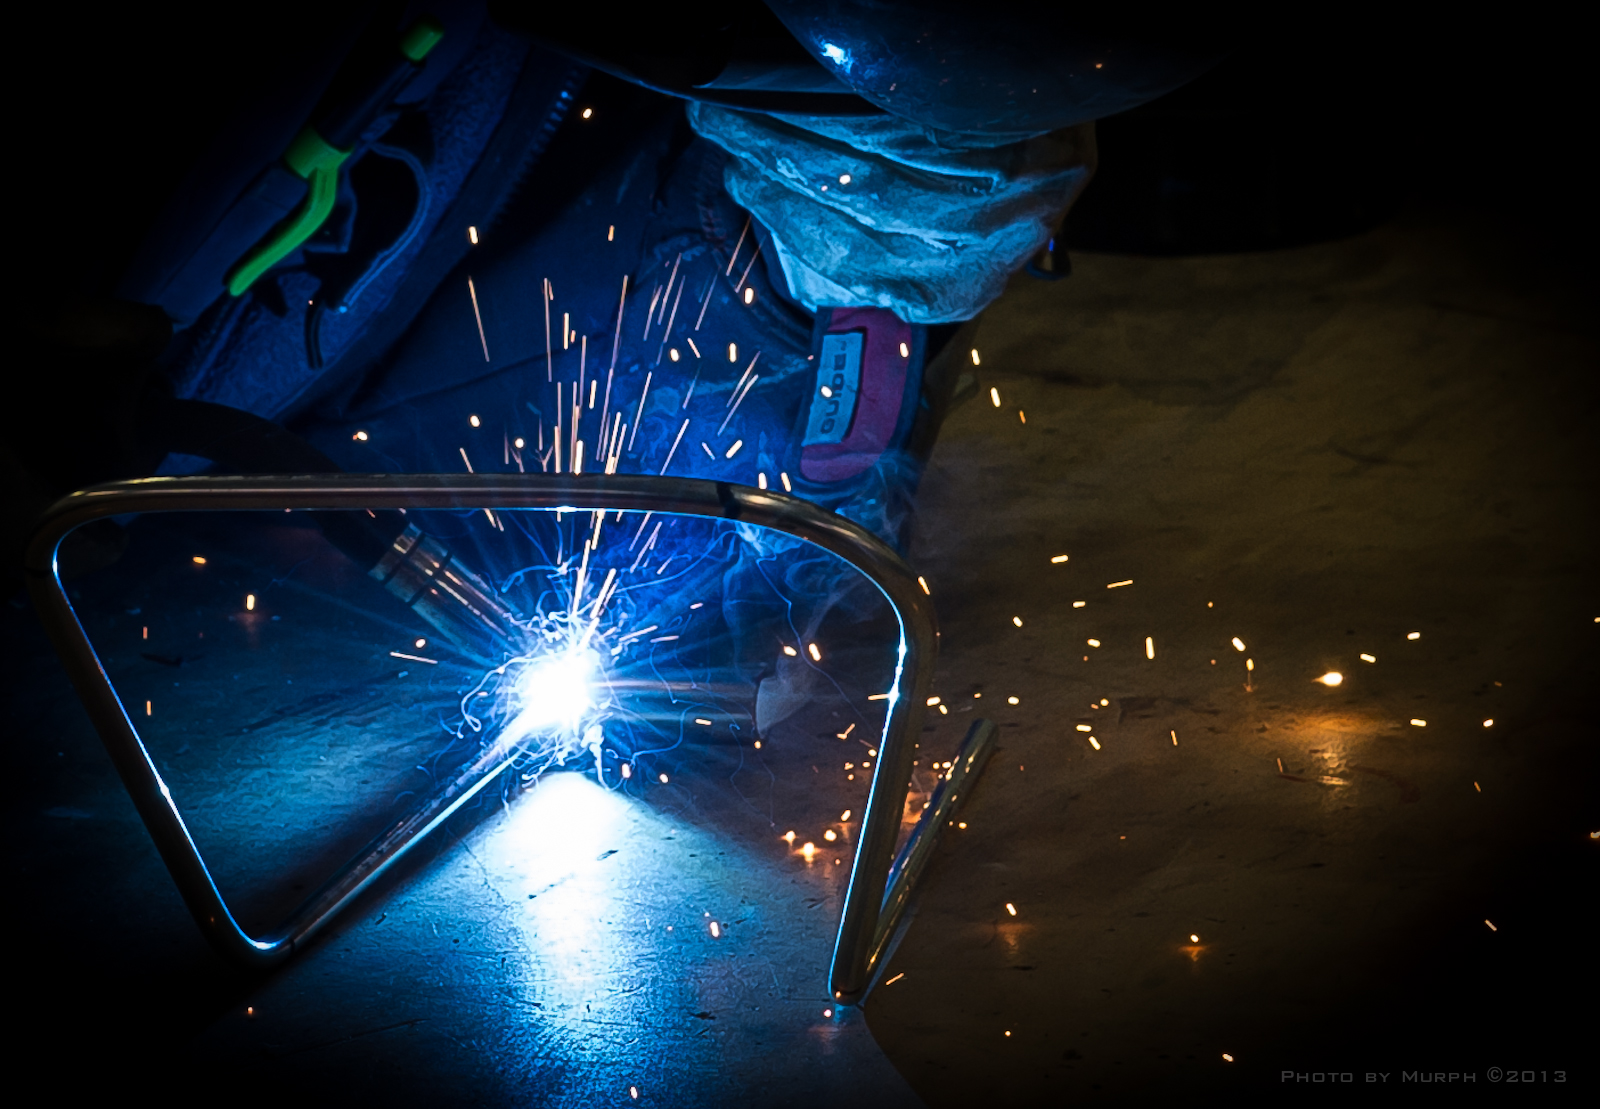 cool welding projects Forums » off-topic discussion » cool welding project suggestions that wine bottle holder is way cool 92celicahalftrac megadork your projects.